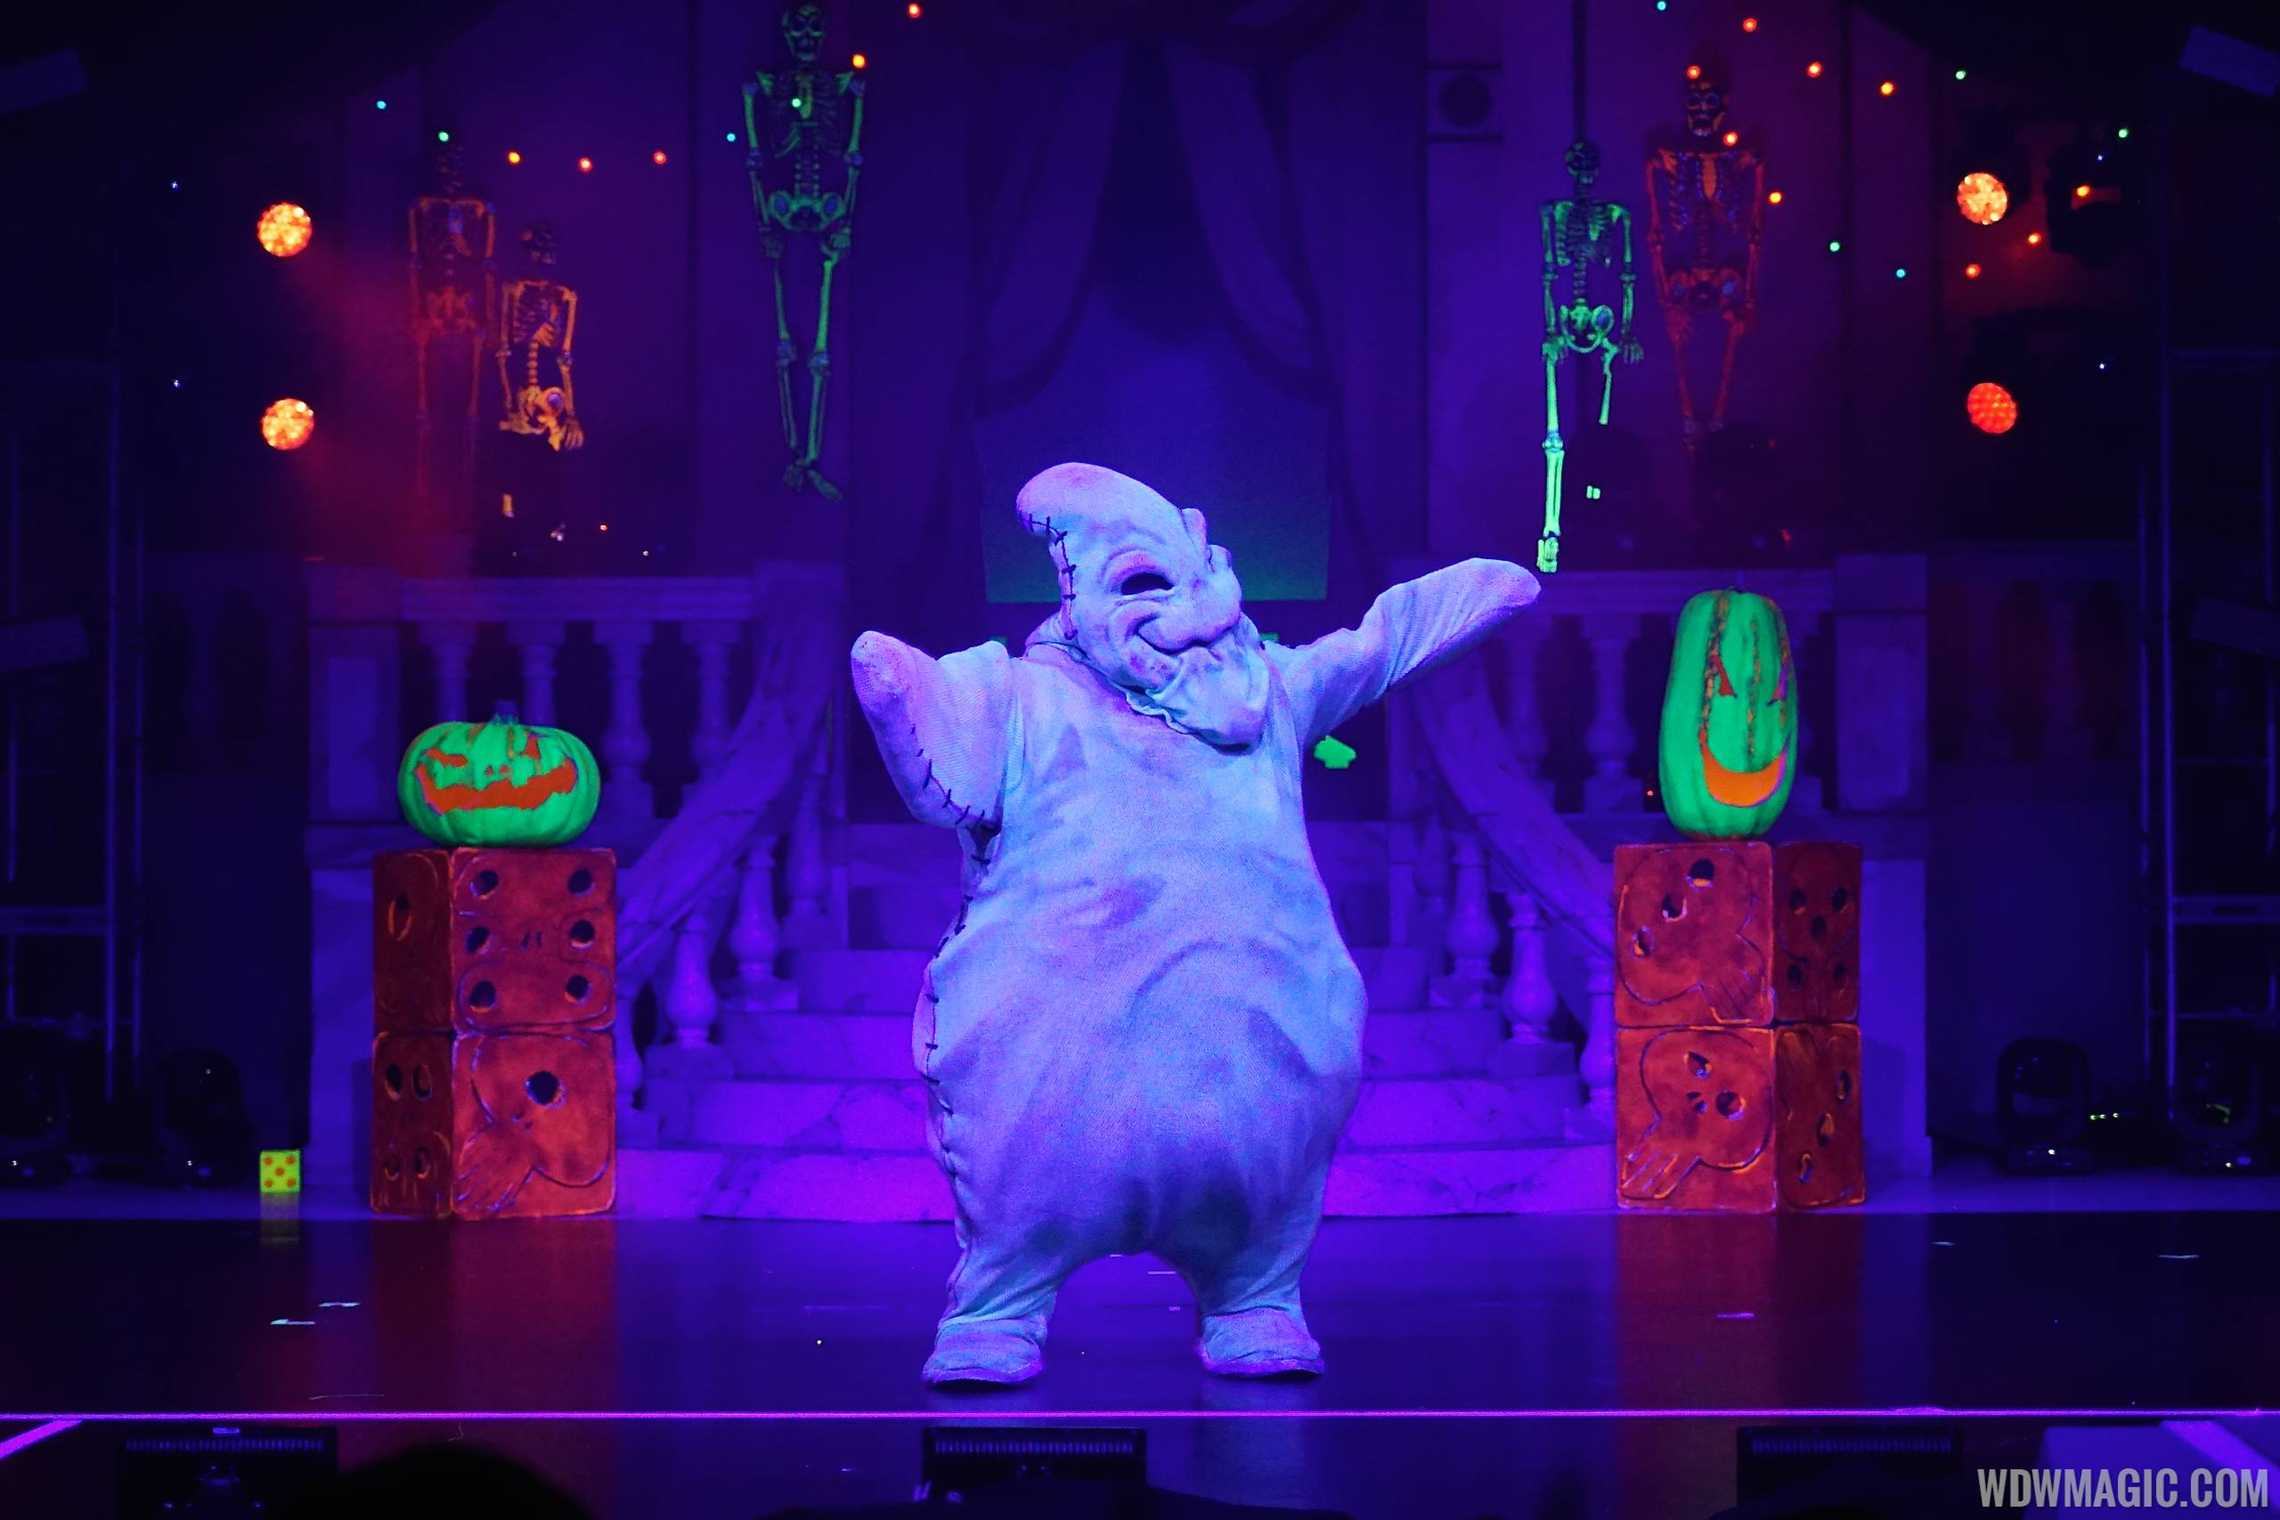 Villains Unleashed - Oogie Boogie's Freaky Funhouse - Oogie Boogie